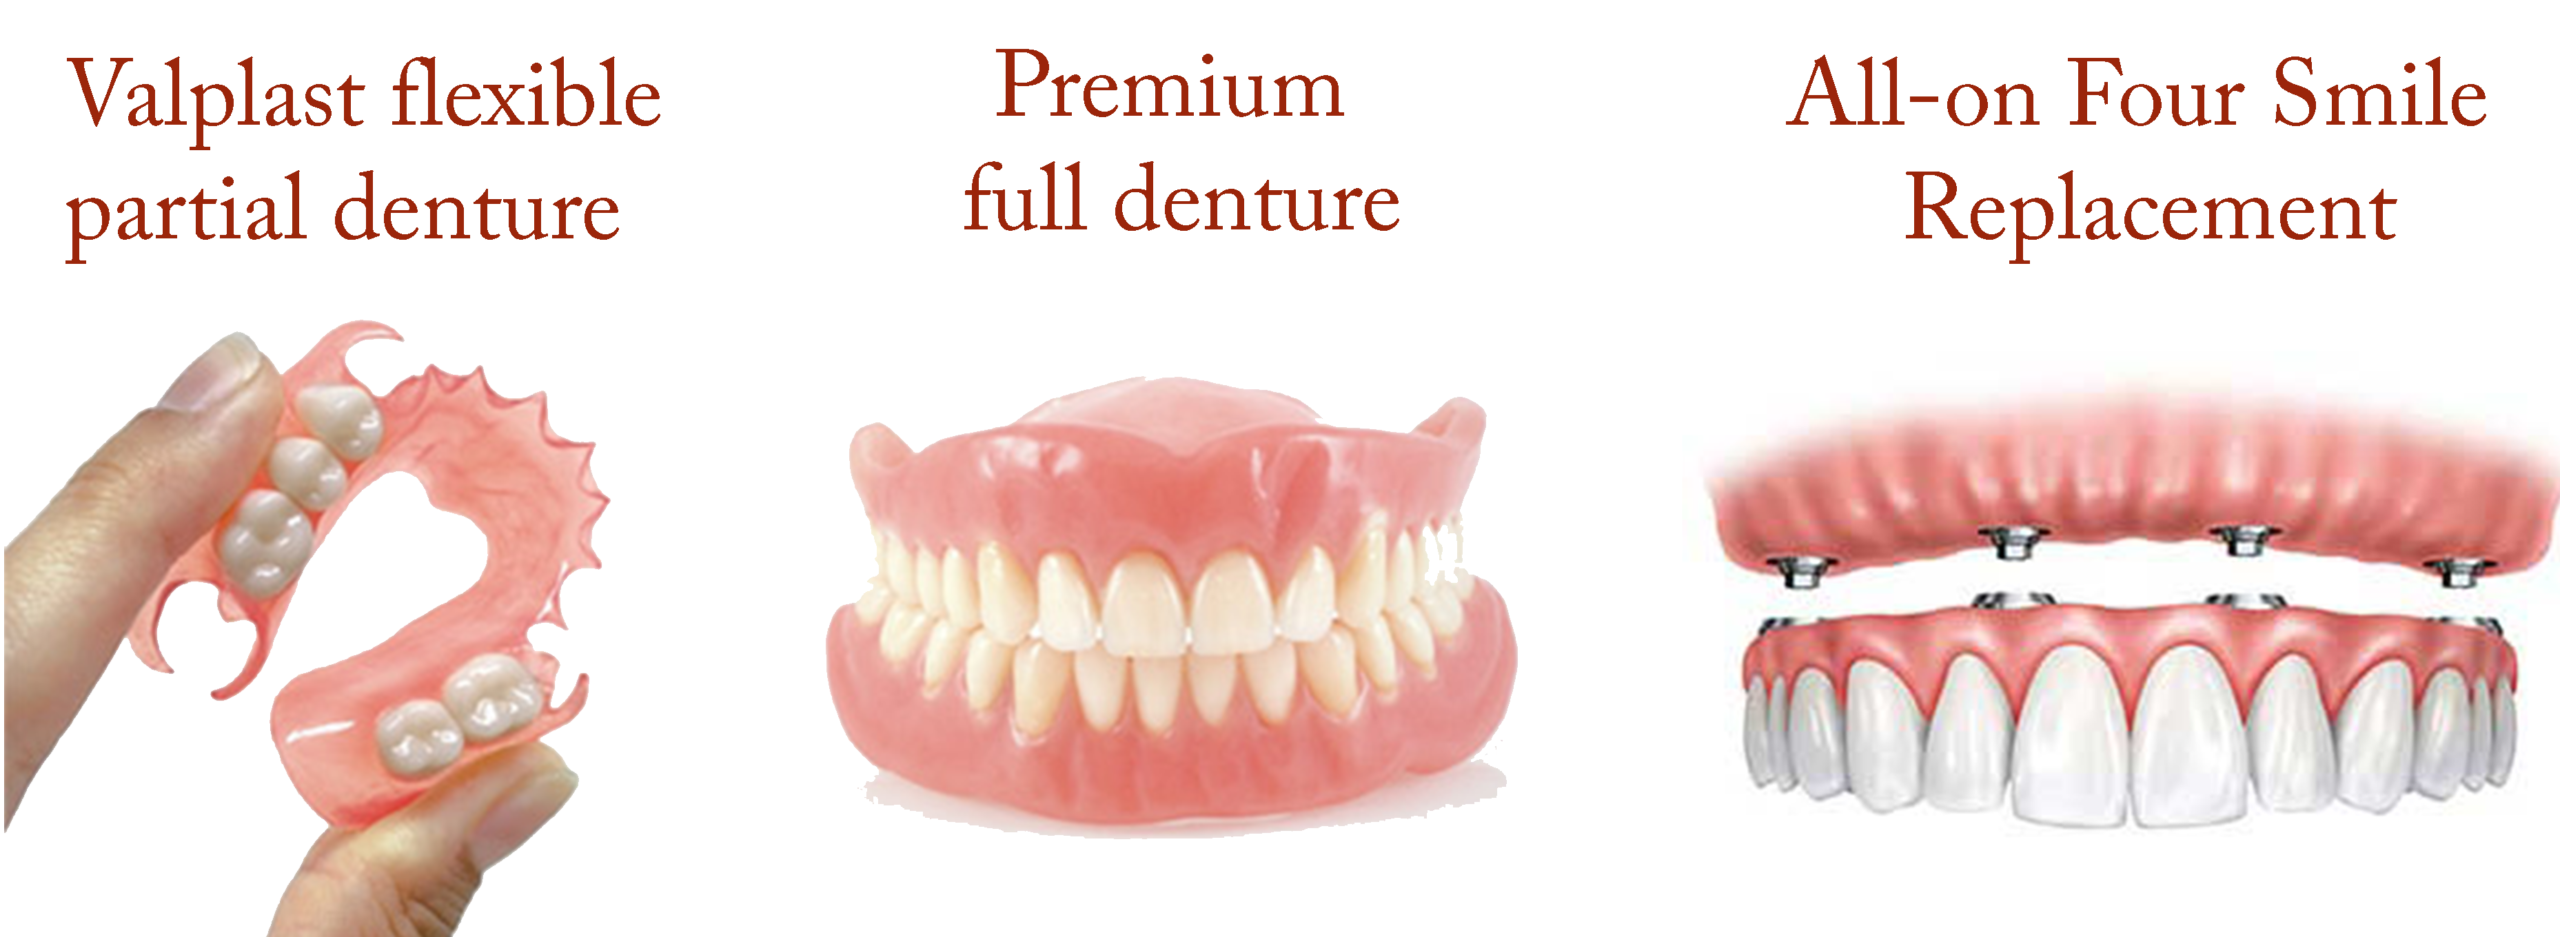 Dentures, Partials, All-On Four